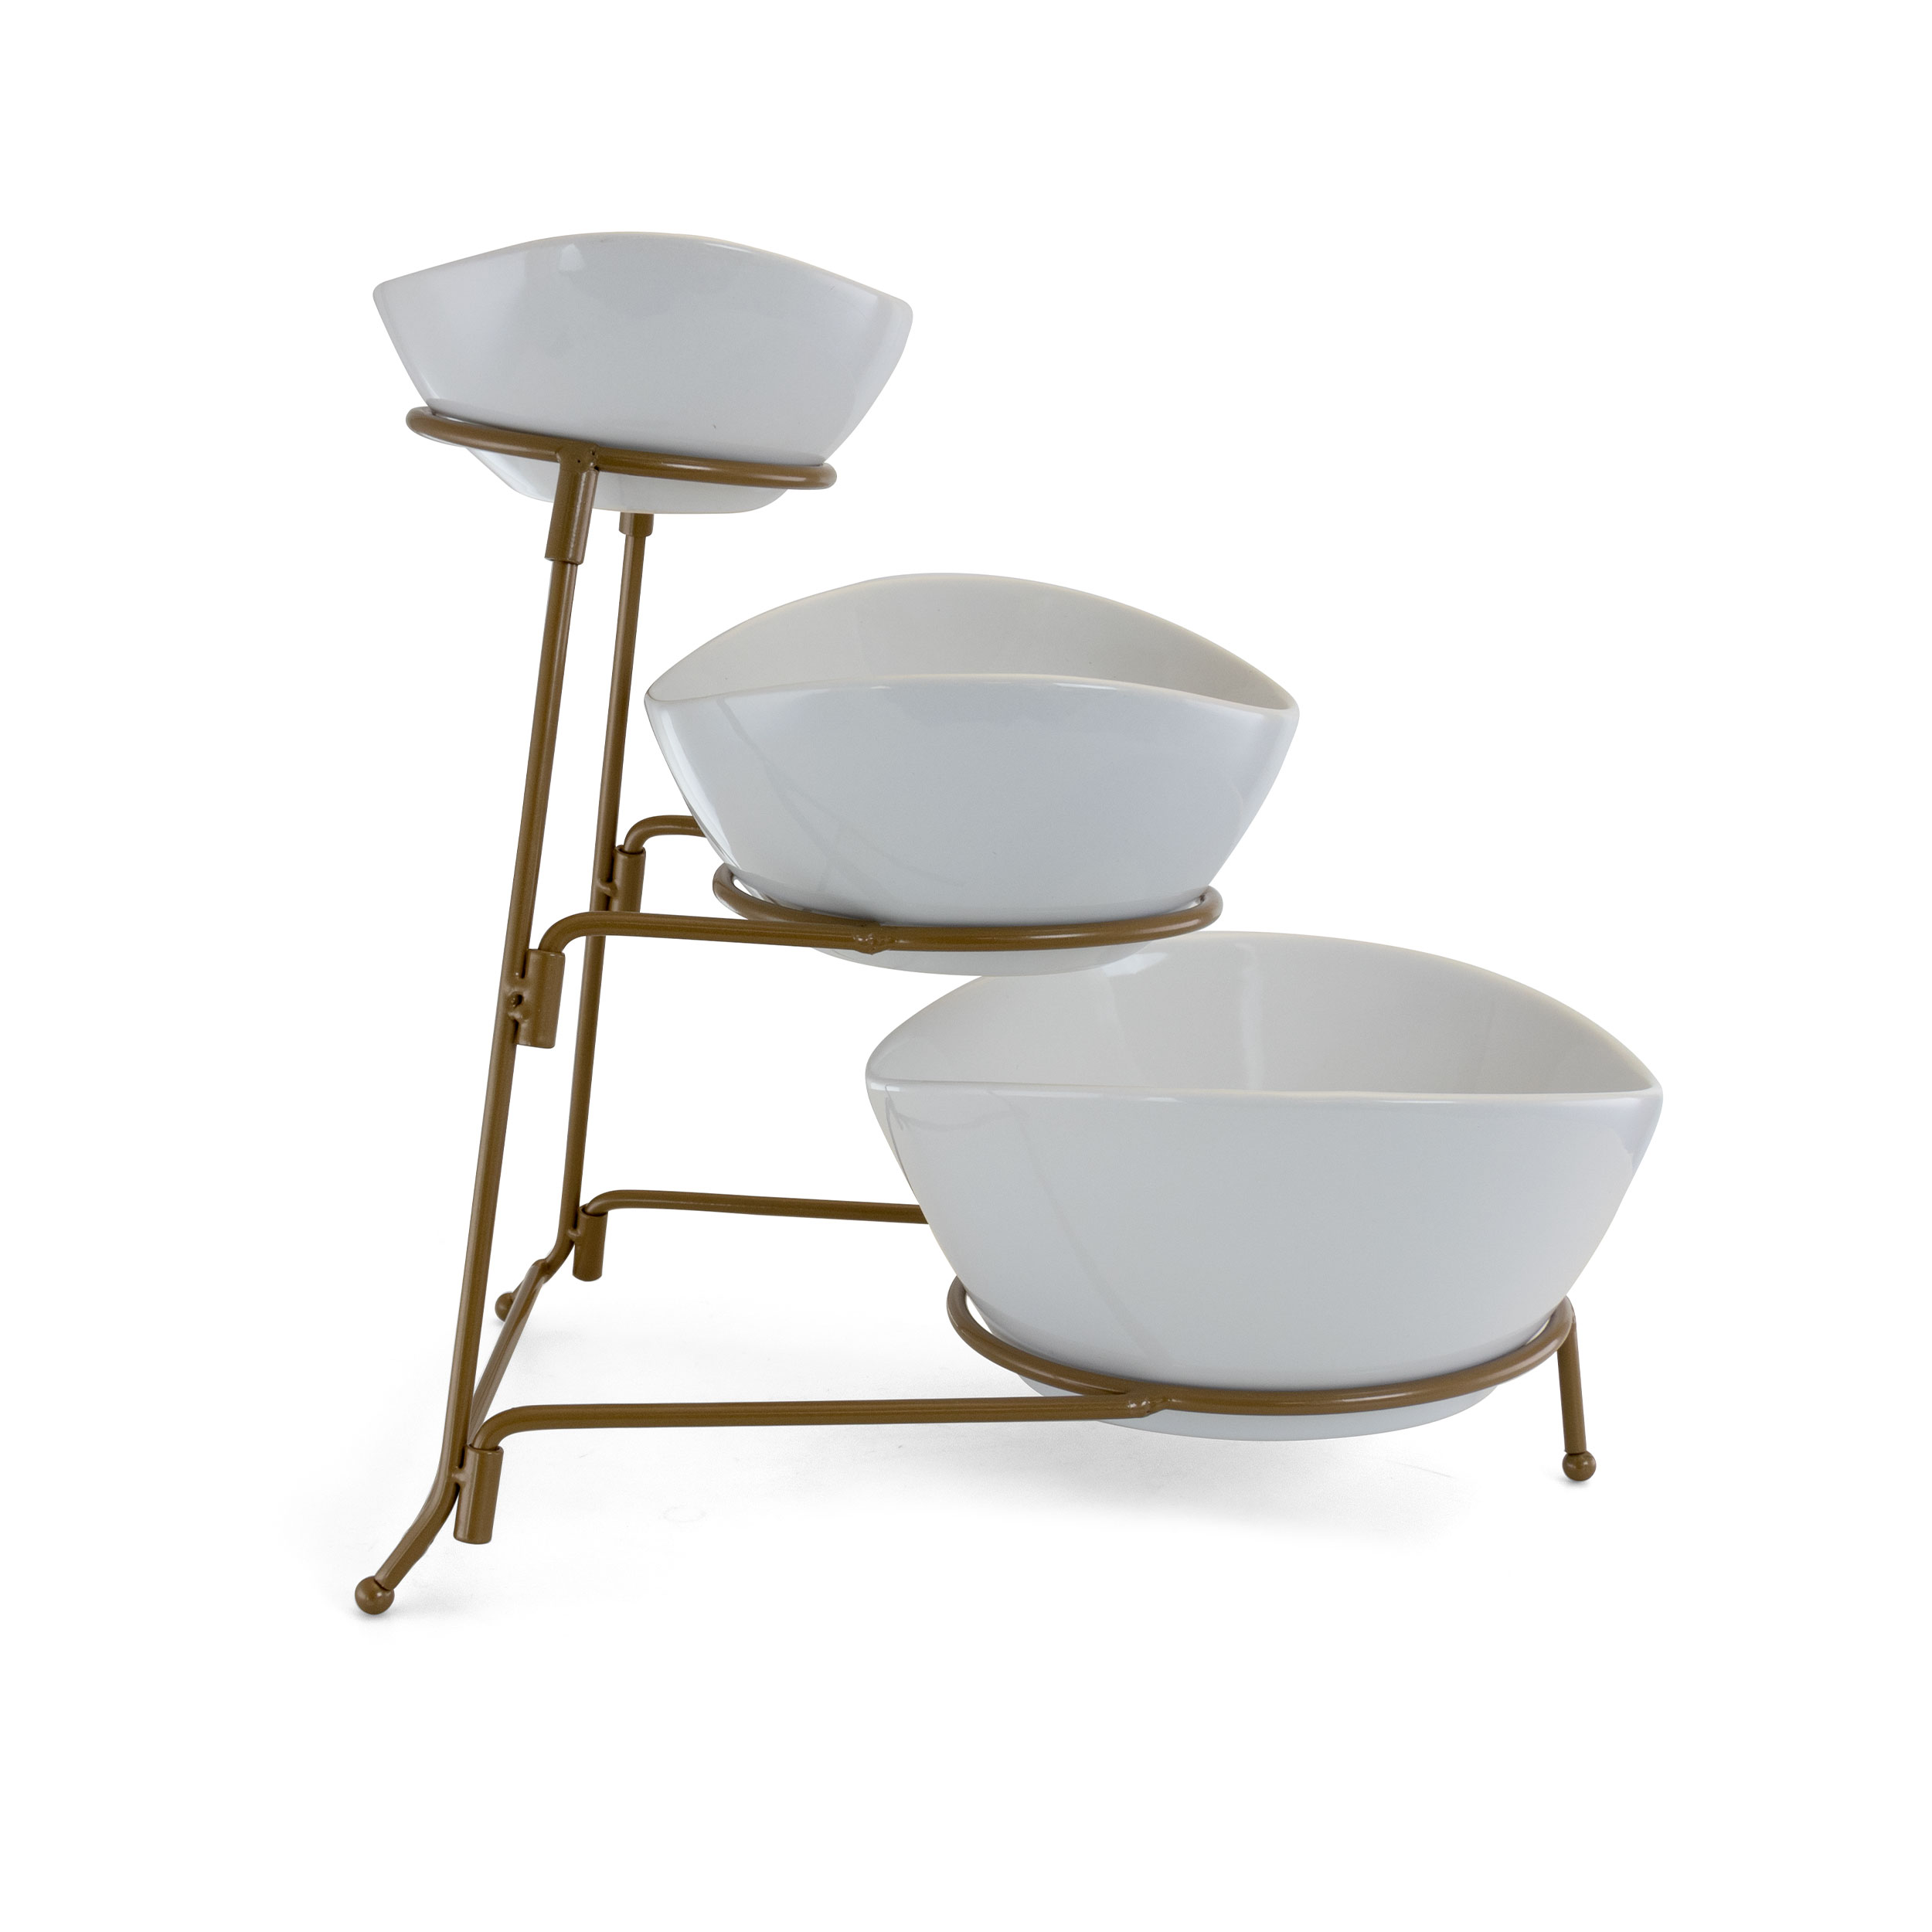 Three Tier Dessert And Snack Server Gibson 3 Tiered Oval Chip And Dip Set With Metal Rack Gold